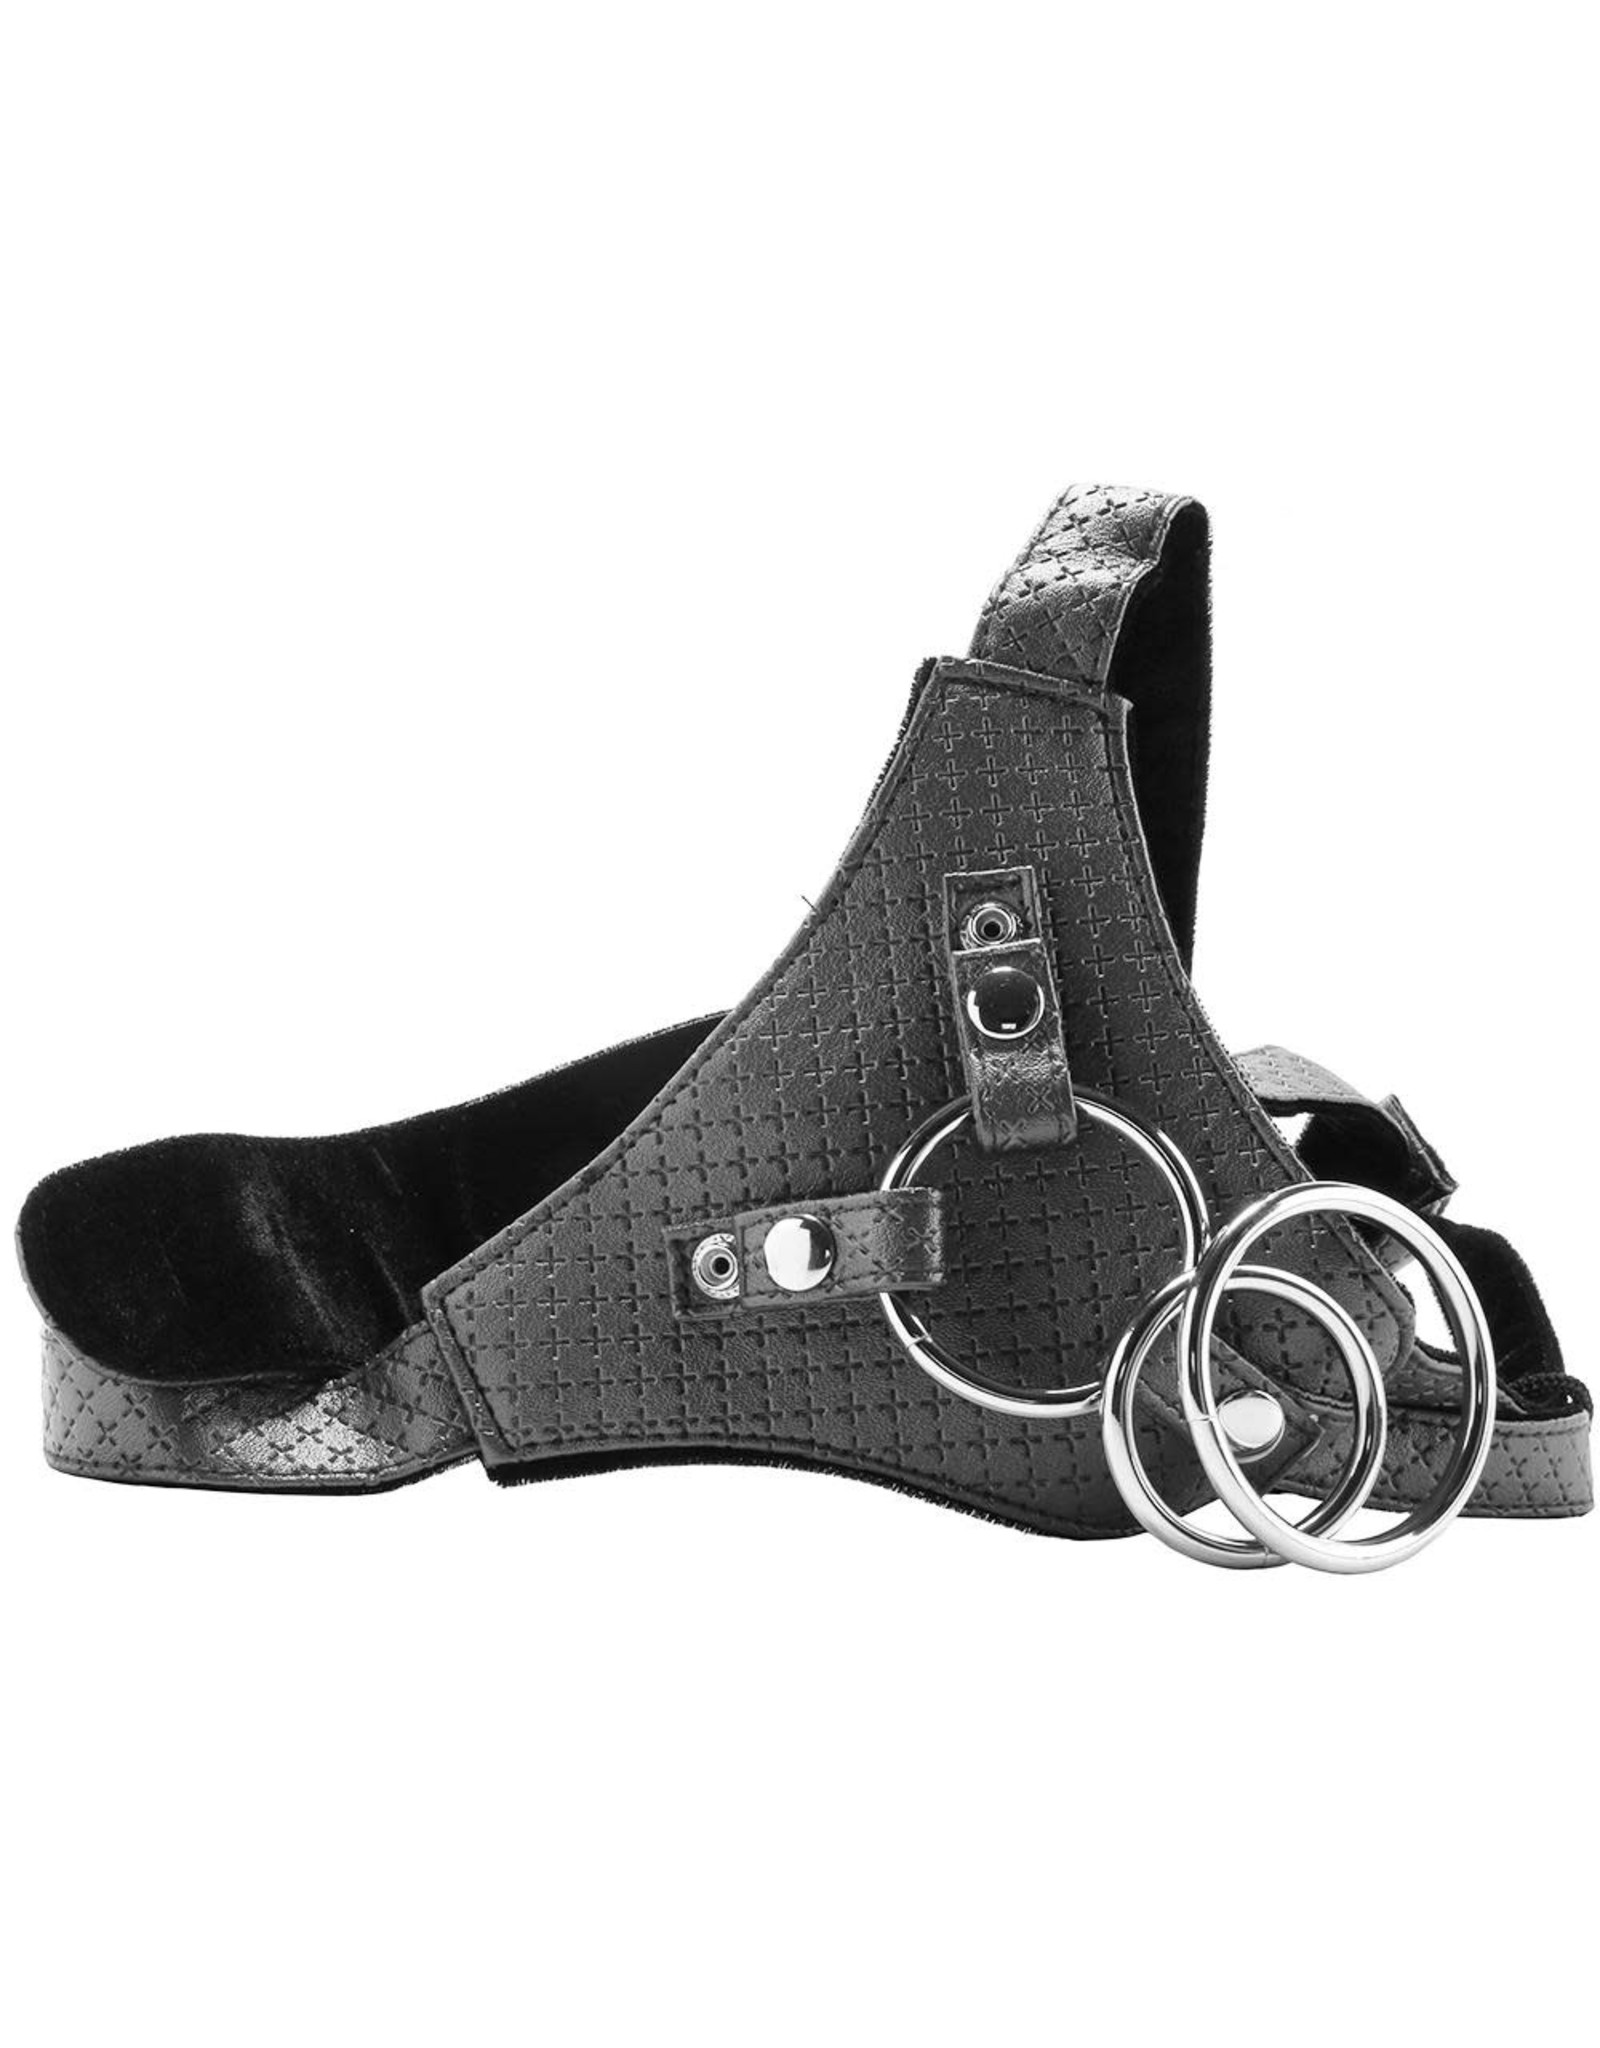 Calexotics Her Royal Harness- The Regal Queen (Pewter)